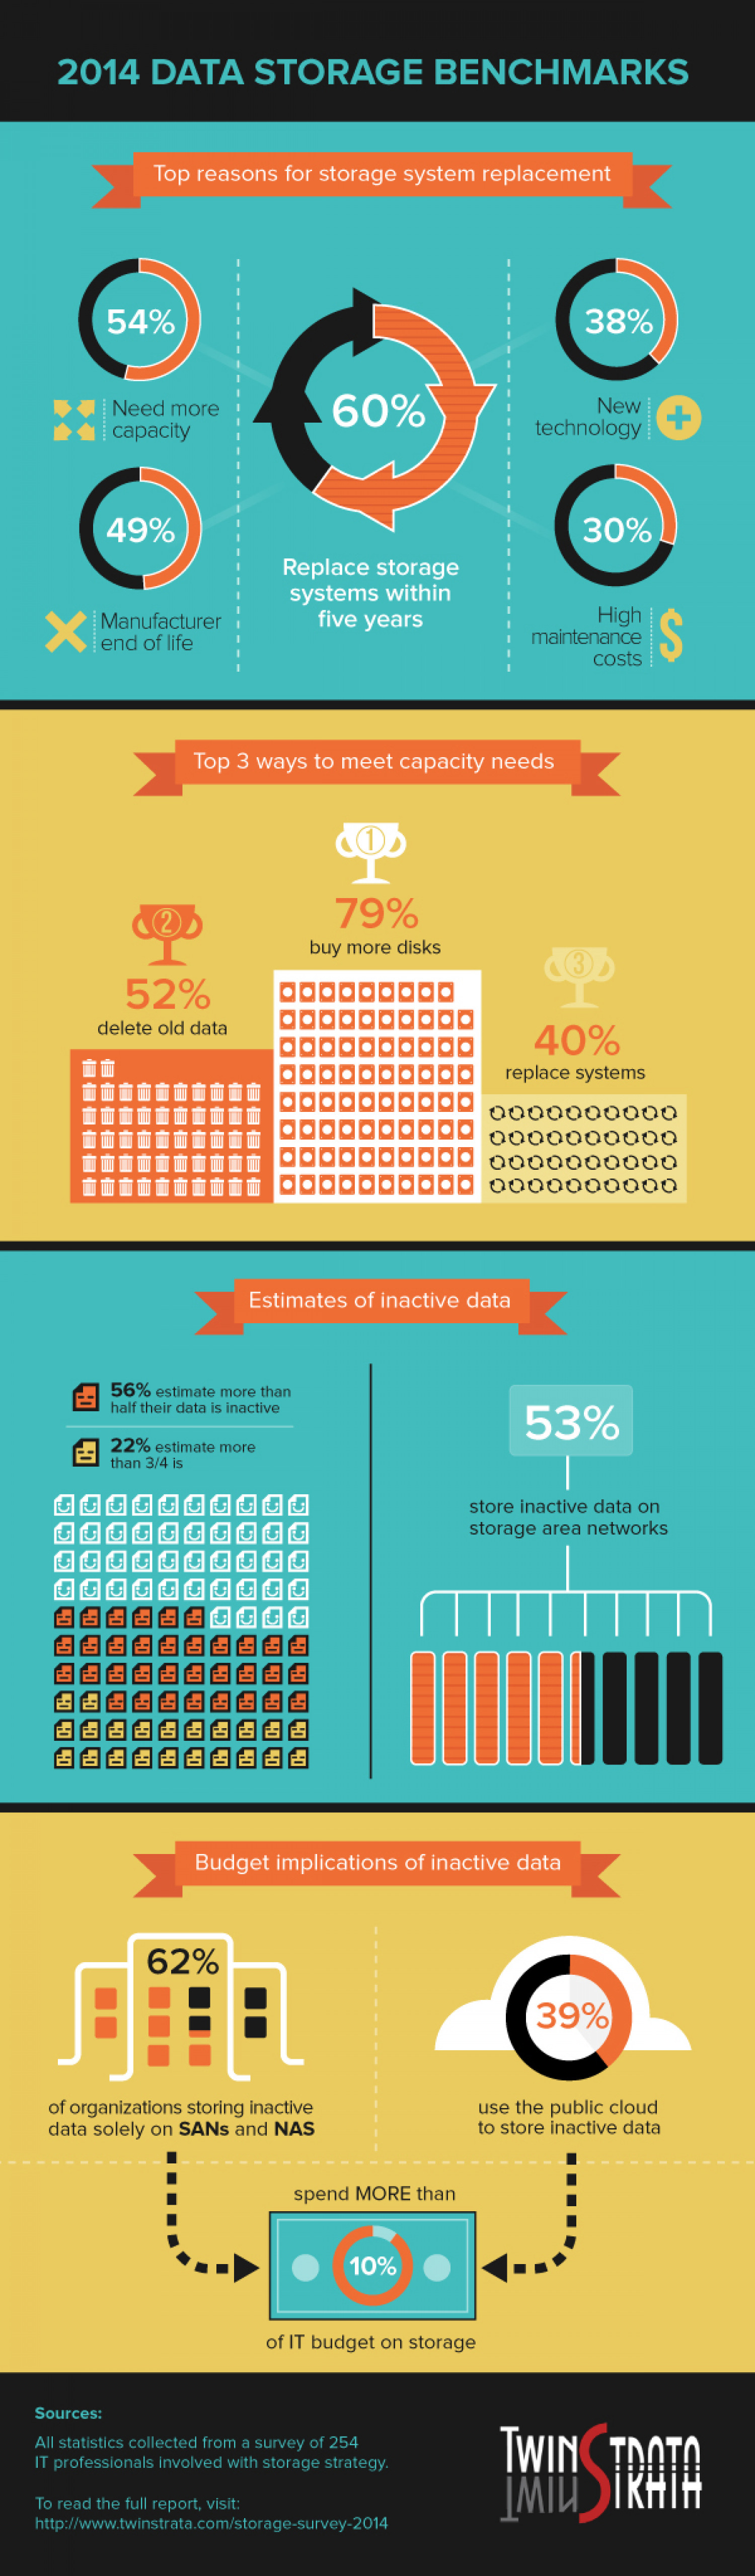 2014 Data Storage Benchmarks Infographic